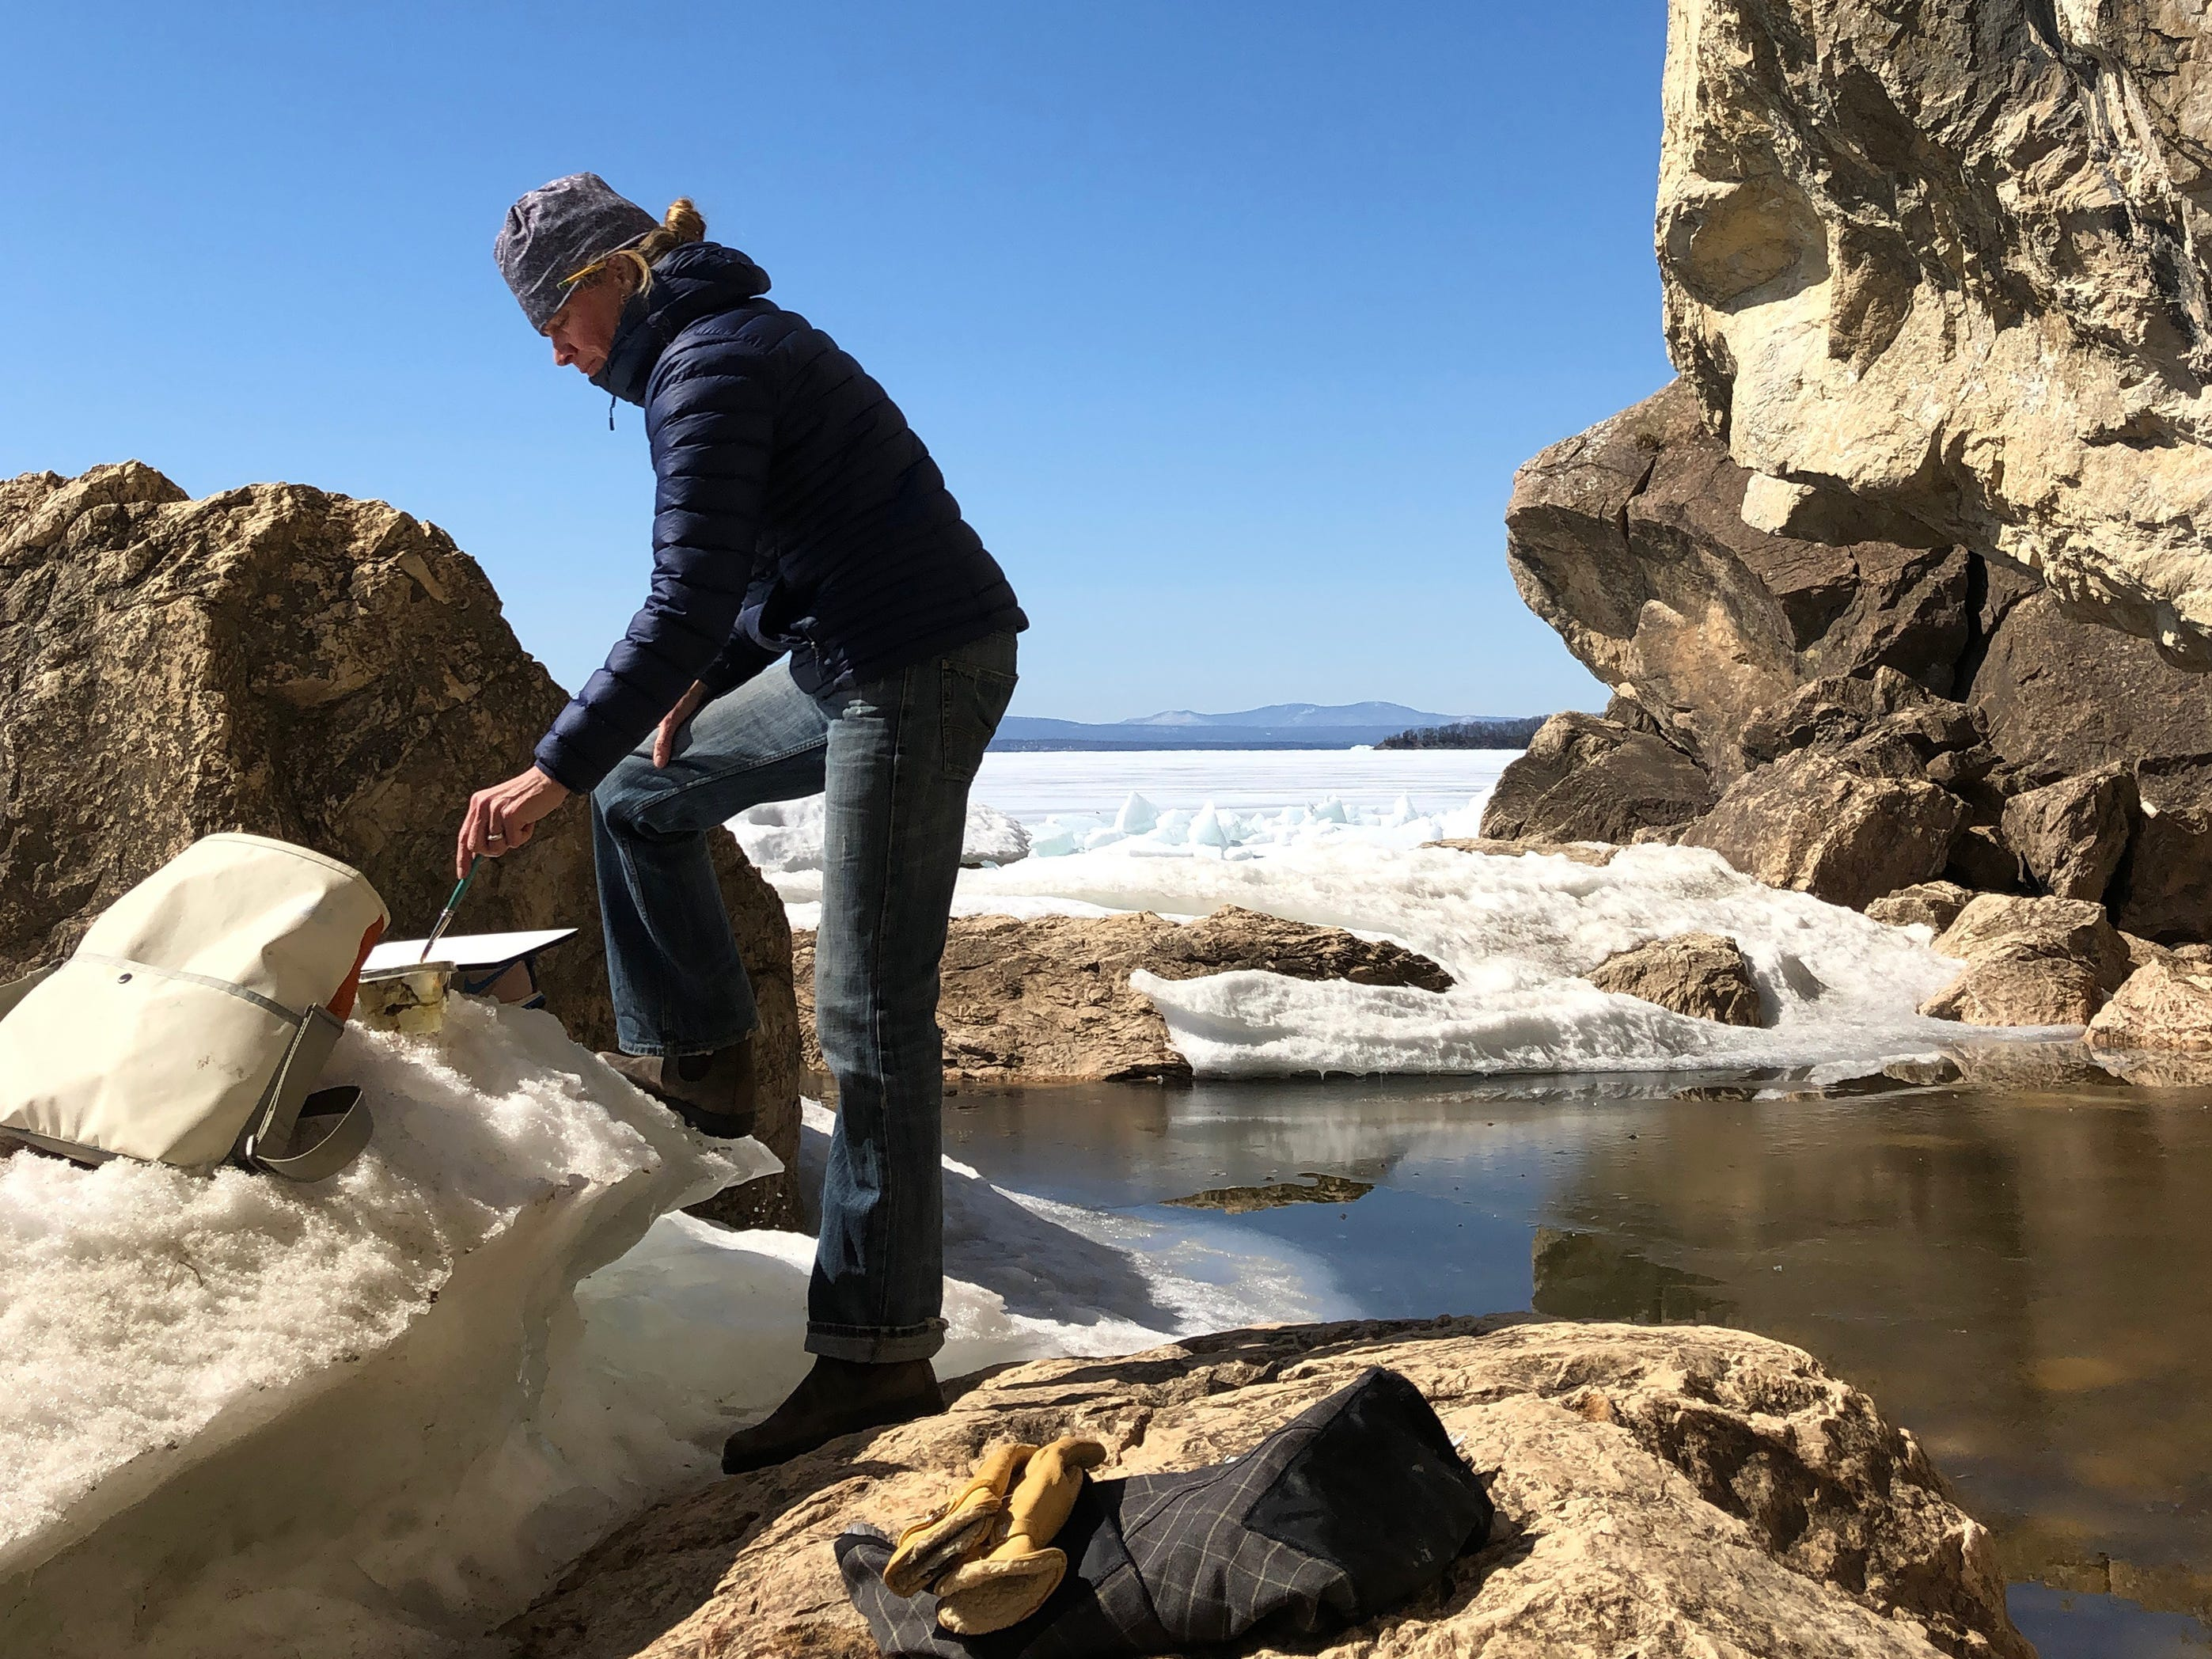 Burlington artist Katharine Montstream paints an icy landscape at Rock Point on March 26, 2019.